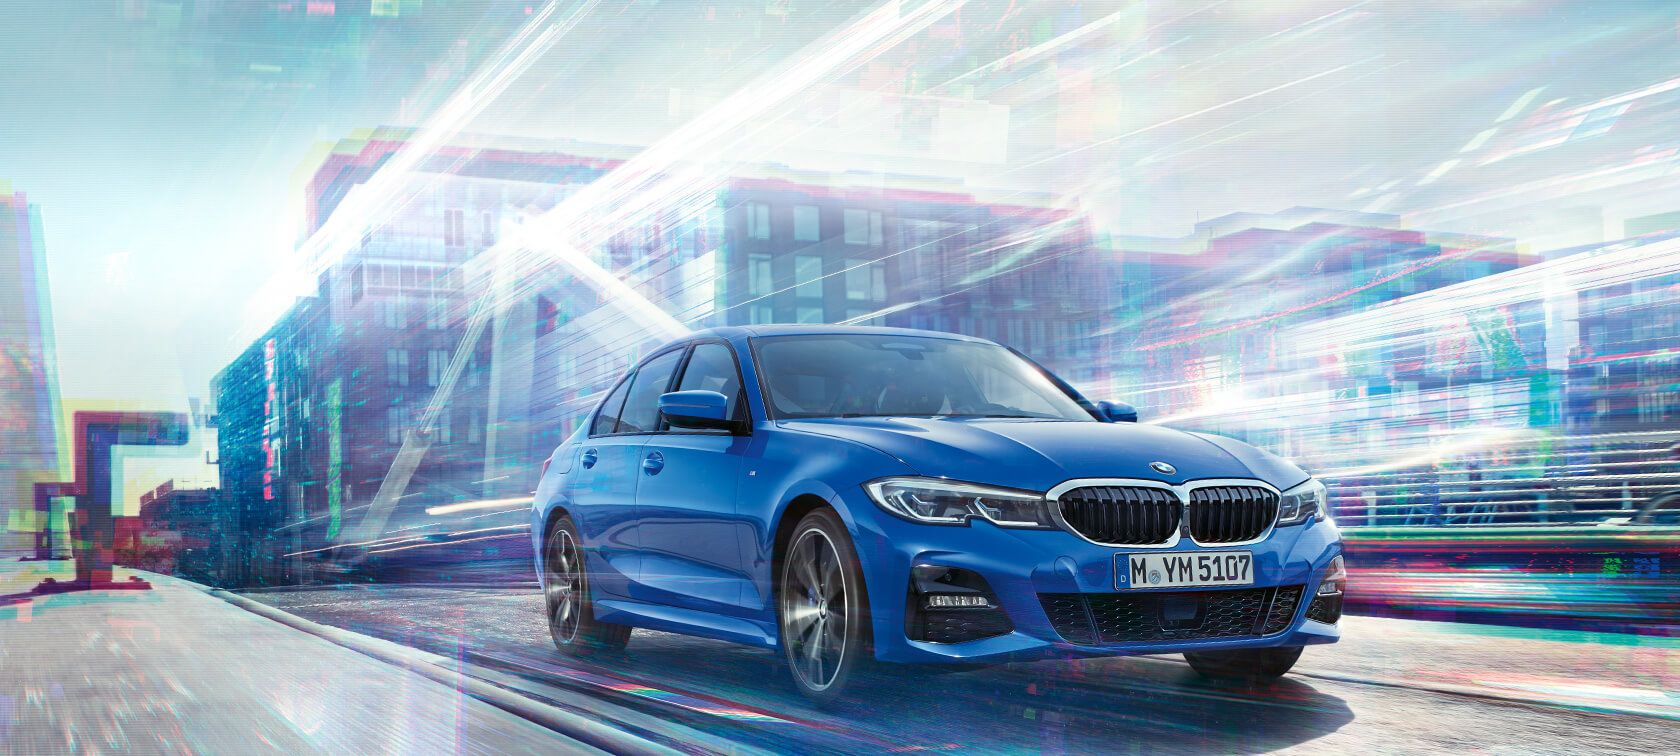 Bmw Digital Showroom Find Your Perfect Bmw At Your Preferred Bmw Dealer